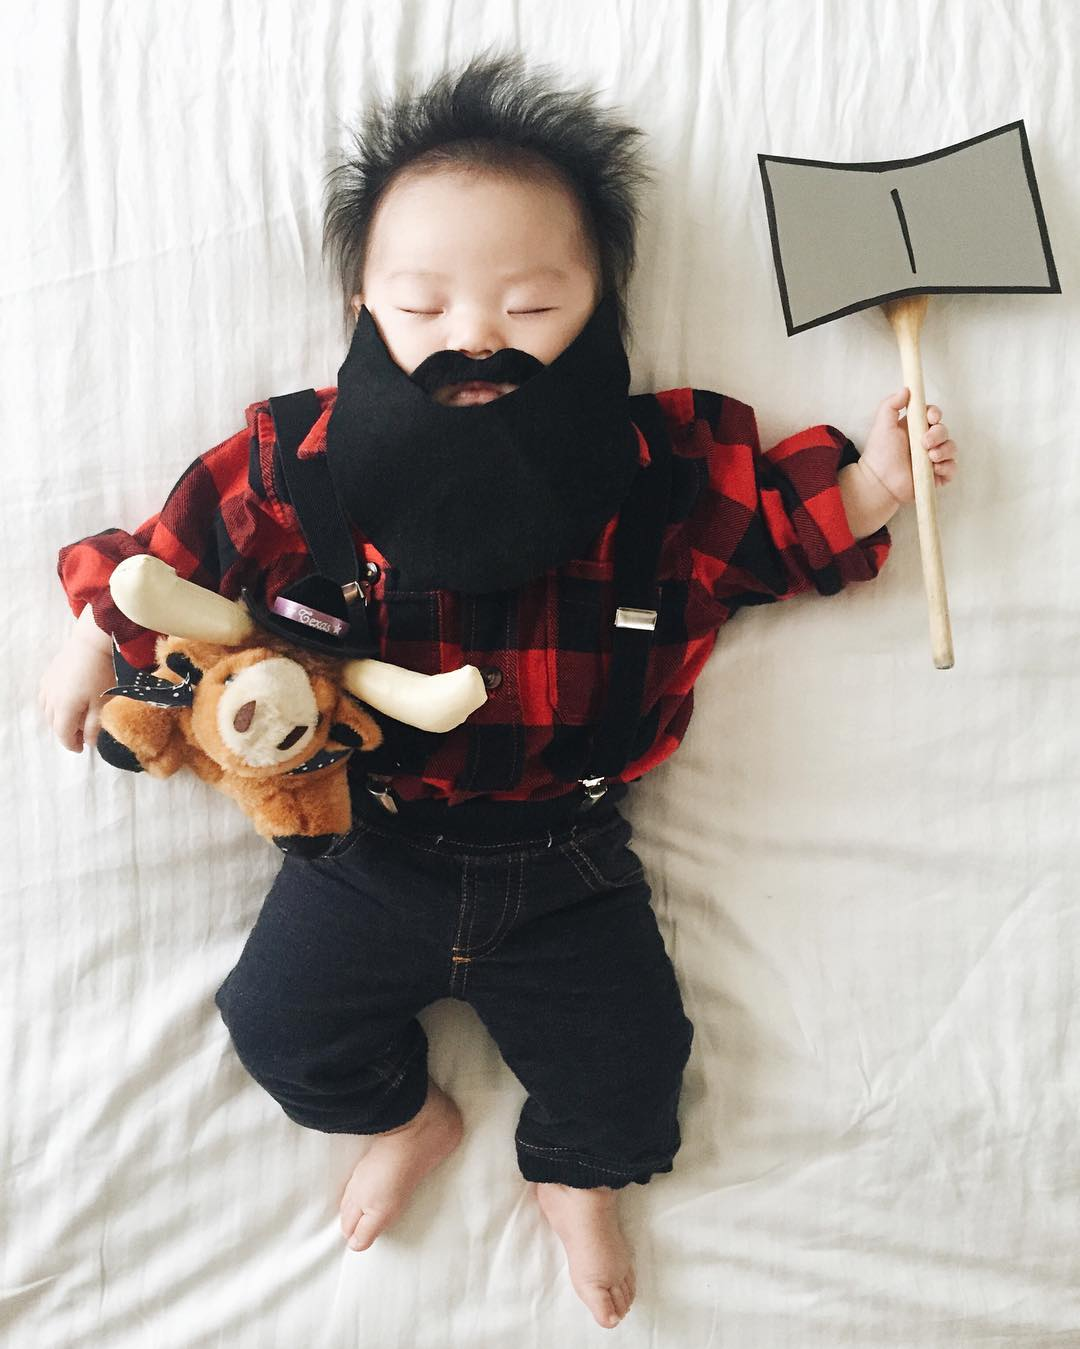 cosplay-baby-12